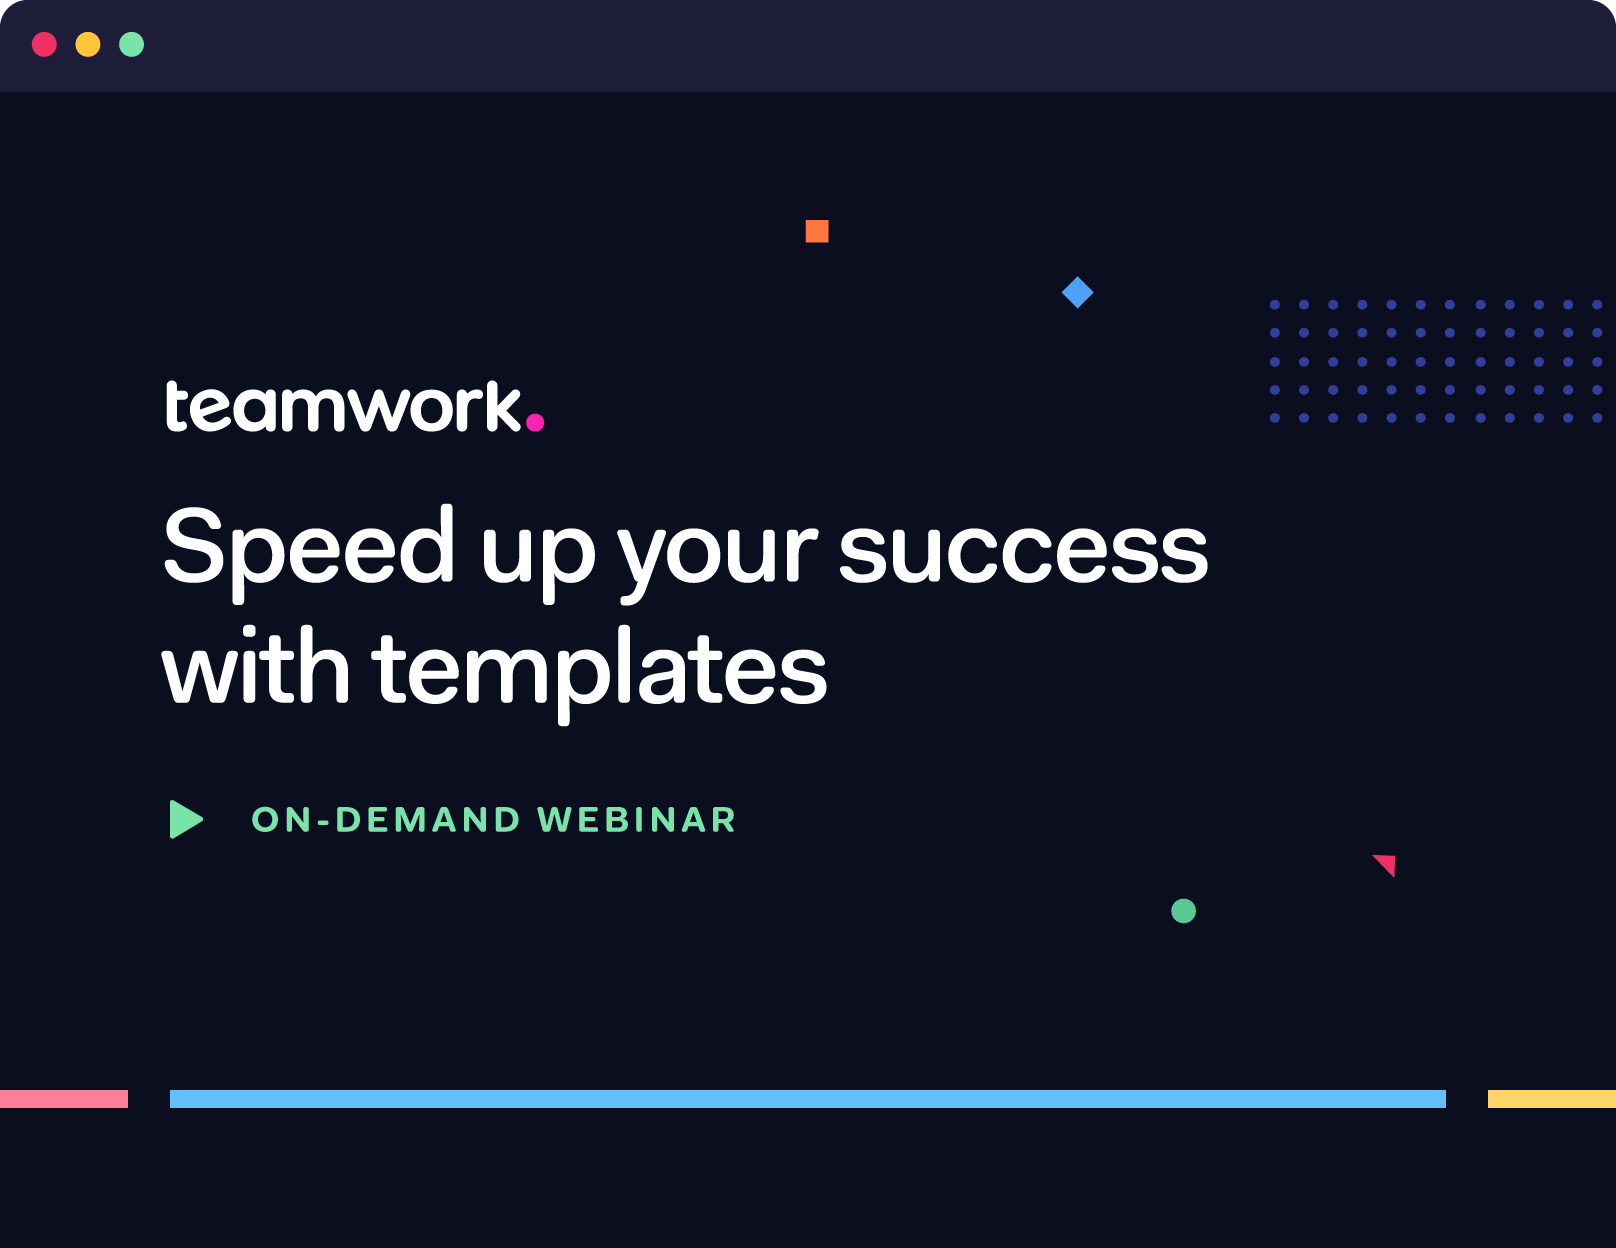 Advanced: Speed up your success with templates